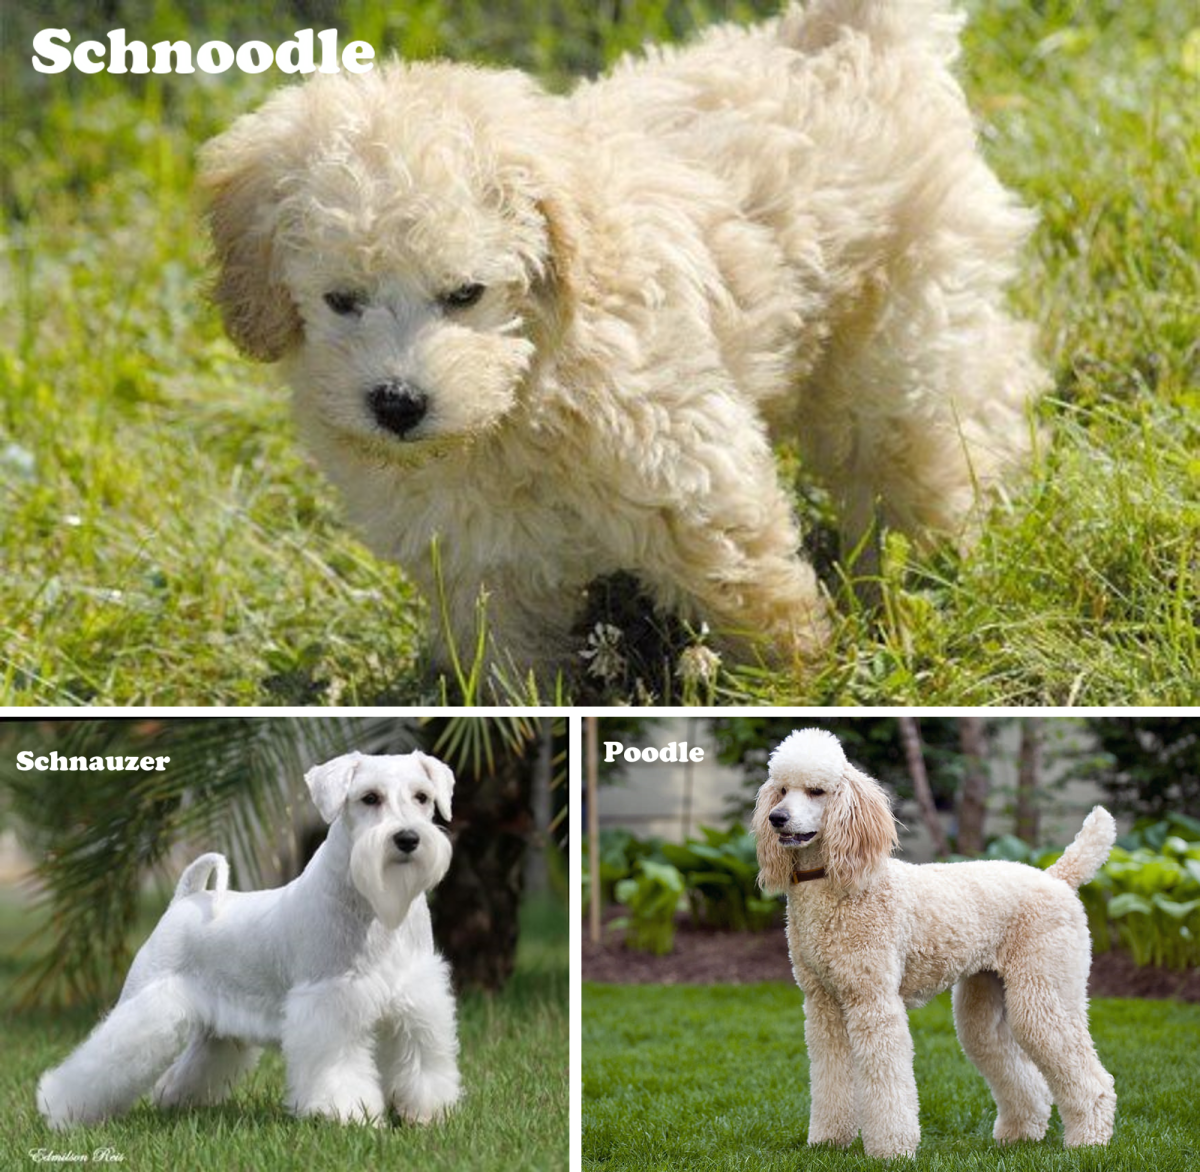 Schnoodle (Schnauzer and Poodle)